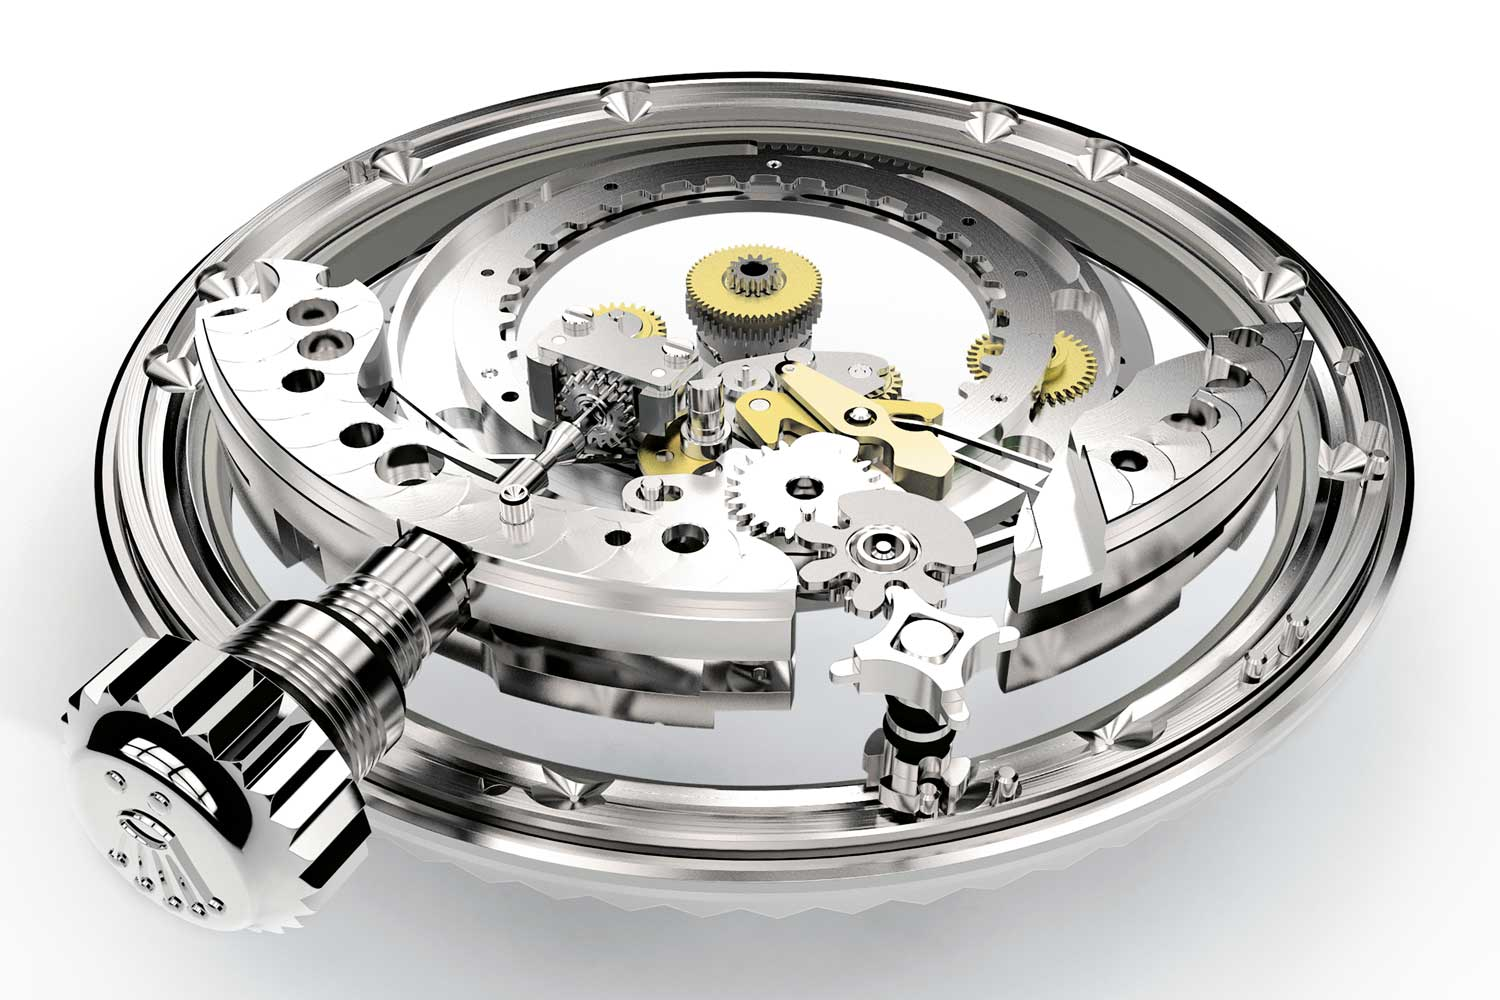 A view of the planetary gear system from the business side of the rotatable fluted bezel, controlled by the crown, which in different positions, offer up a number of different complications on the Oyster Perpetual Sky-Dweller